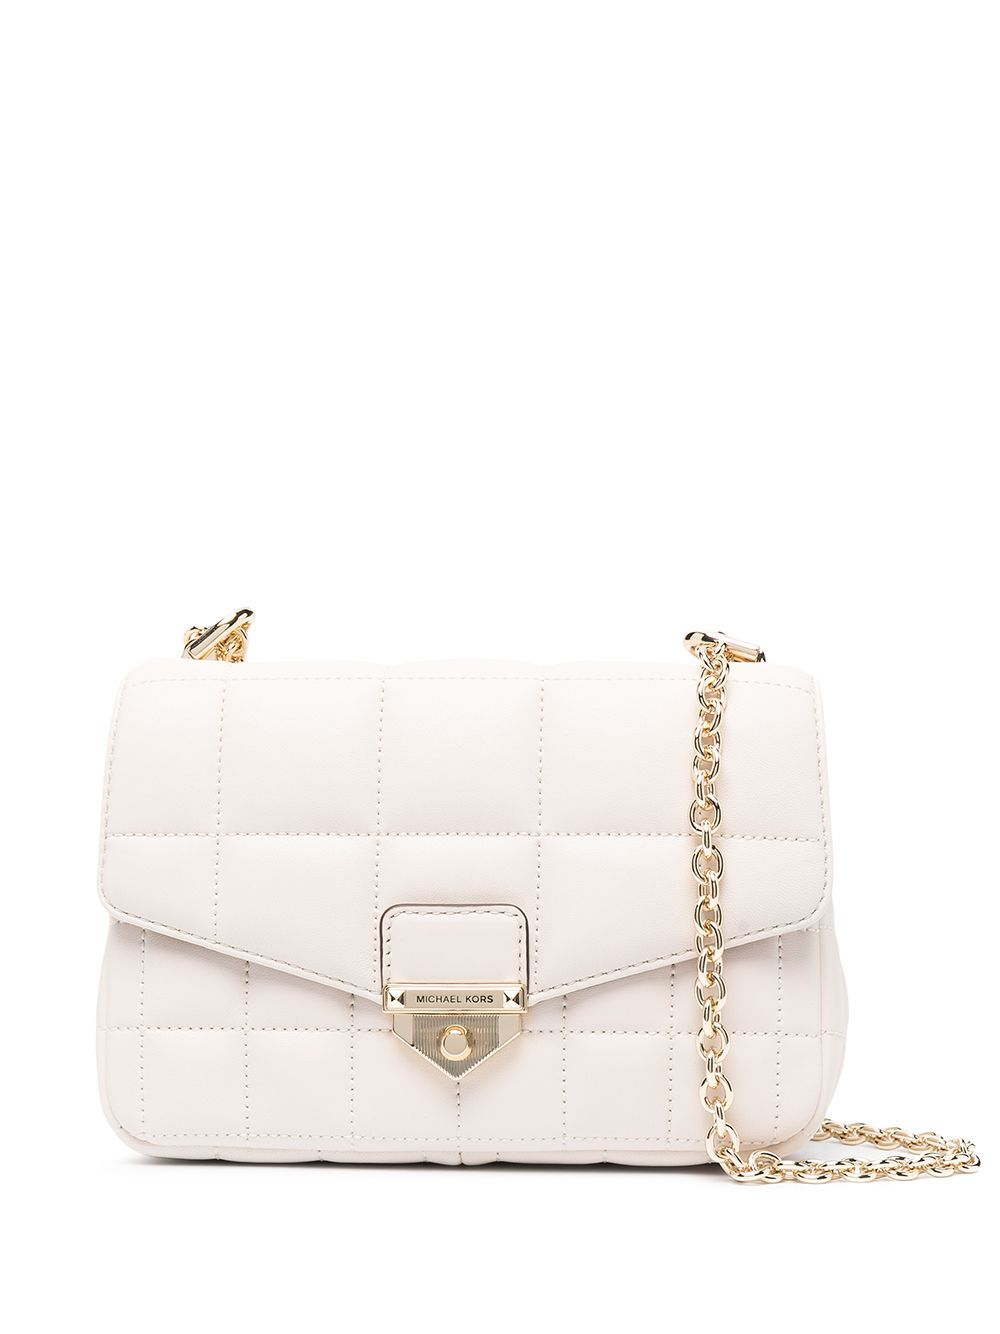 Michael Kors MICHAEL KORS WOMEN'S 30H0L1SL1T289 BEIGE LEATHER SHOULDER BAG